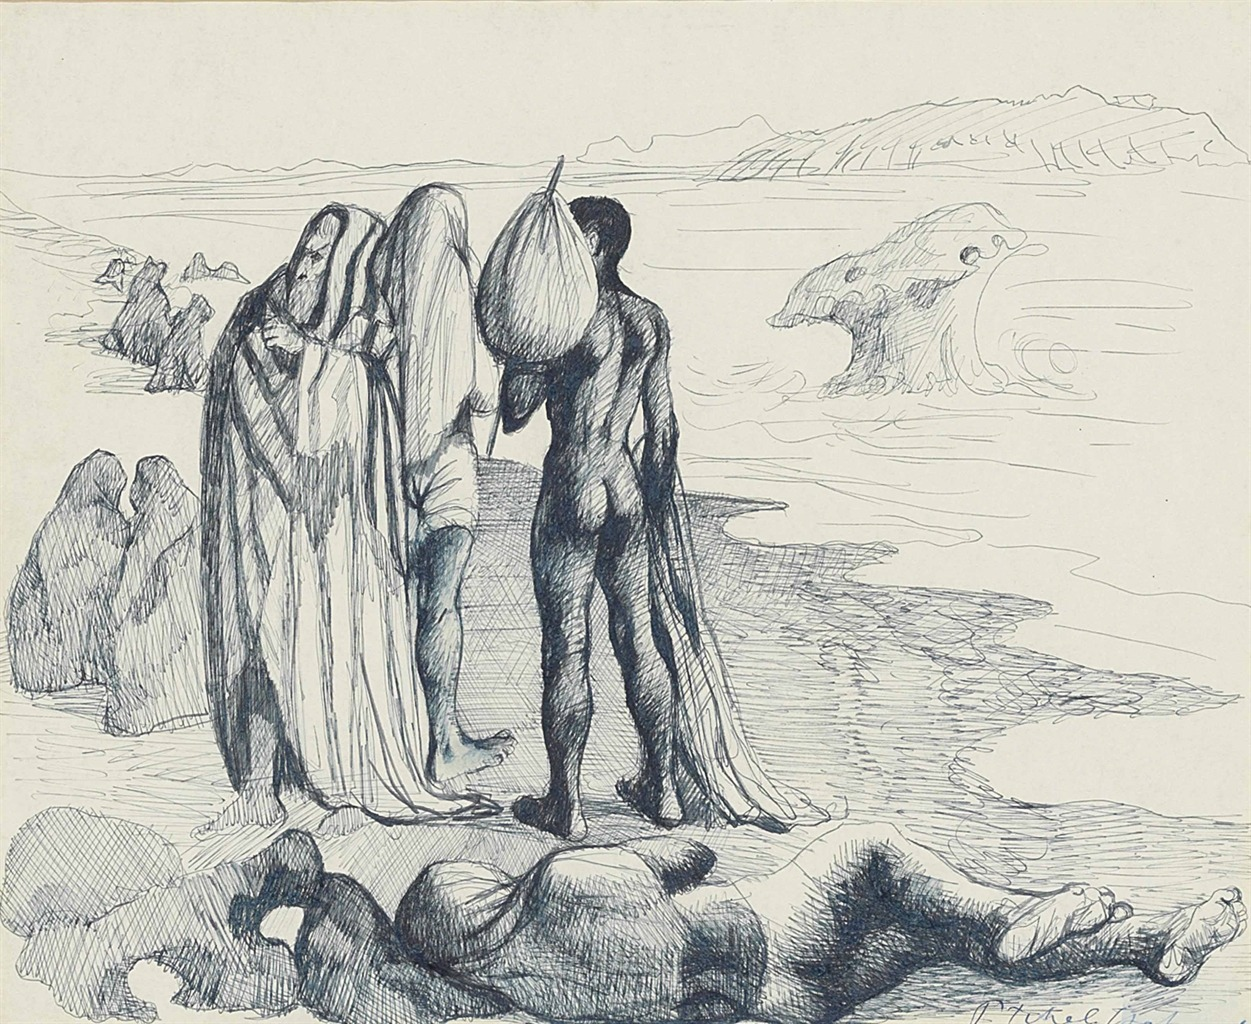 """thunderstruck9:""""Pavel Tchelitchew (Russian, 1898-1957), Figures on a beach, 1943. Ink on paper, 36 x 43 cm."""""""